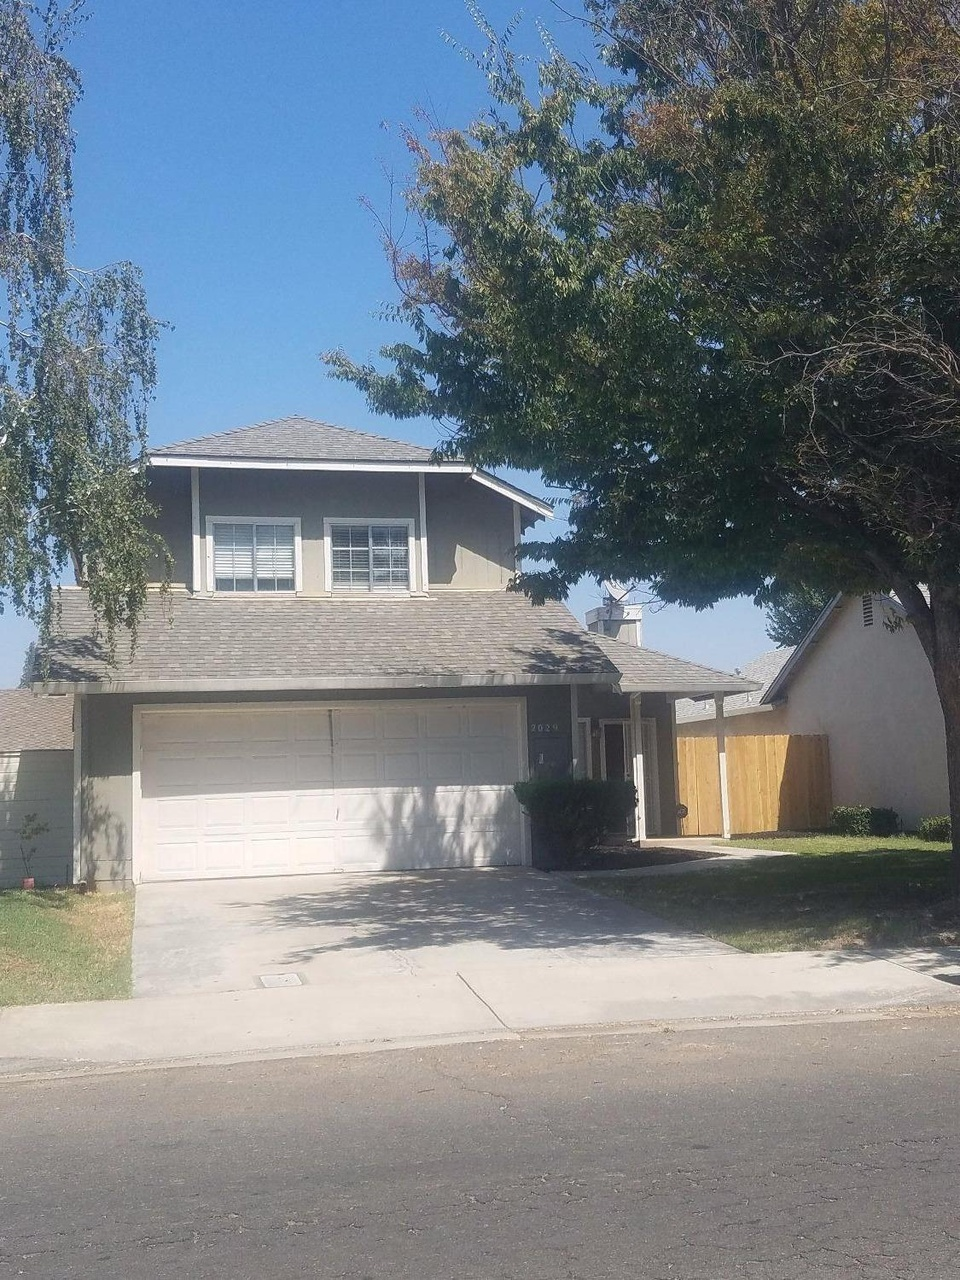 mobile homes for sale in modesto ca with 19951192 on ConcordMobileHome further Home Park Cottages in addition Stone Skirting For Mobile Homes in addition Riverview Mobile Home And Rv Park moreover 19912442.